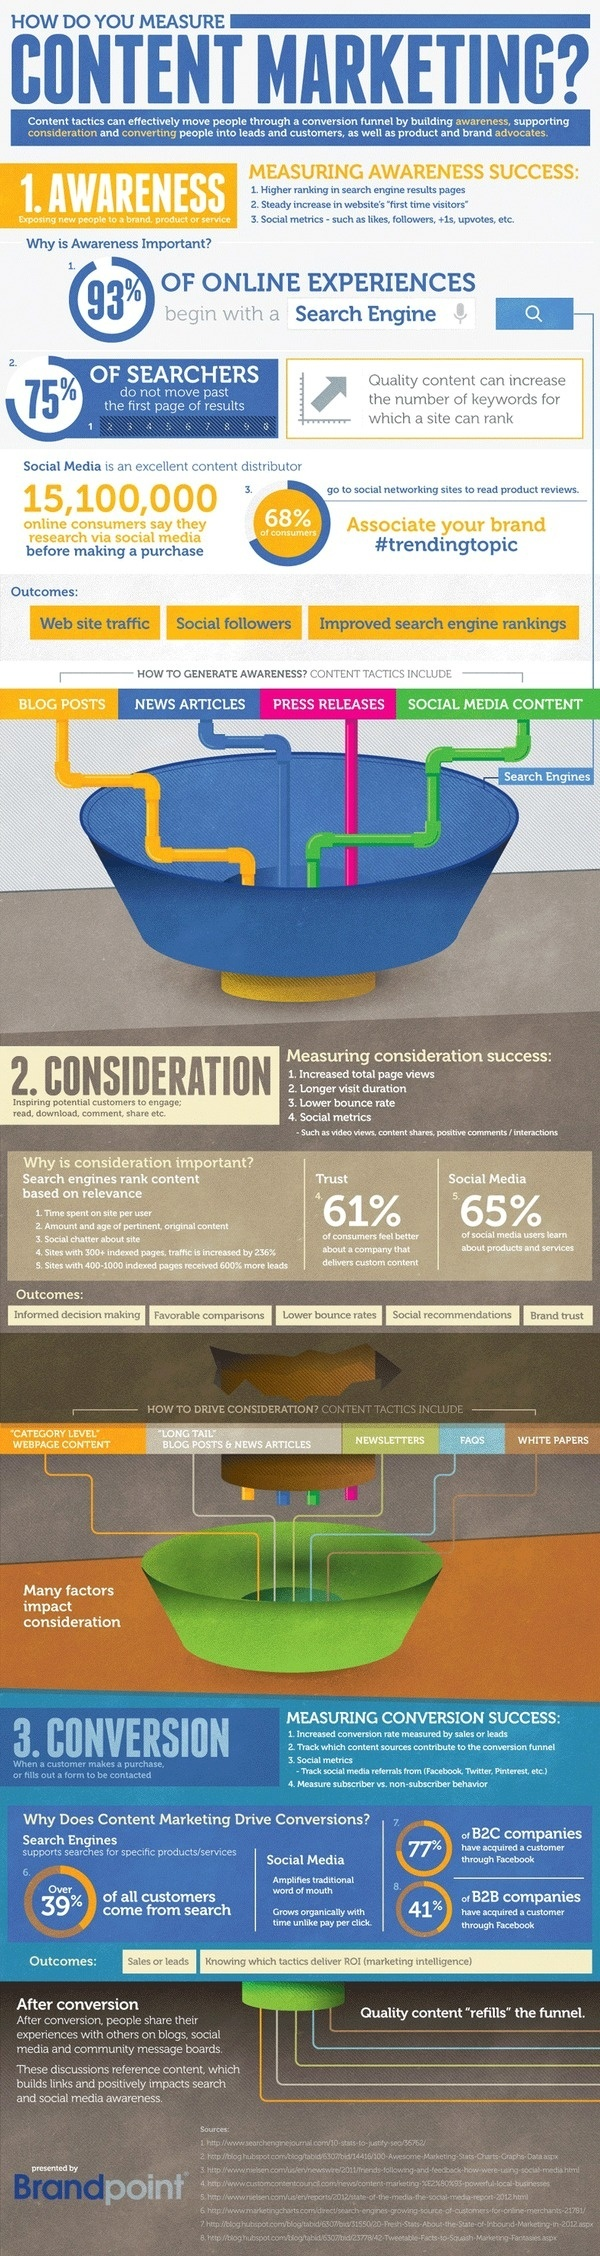 How To Measure Content Marketing #infographic